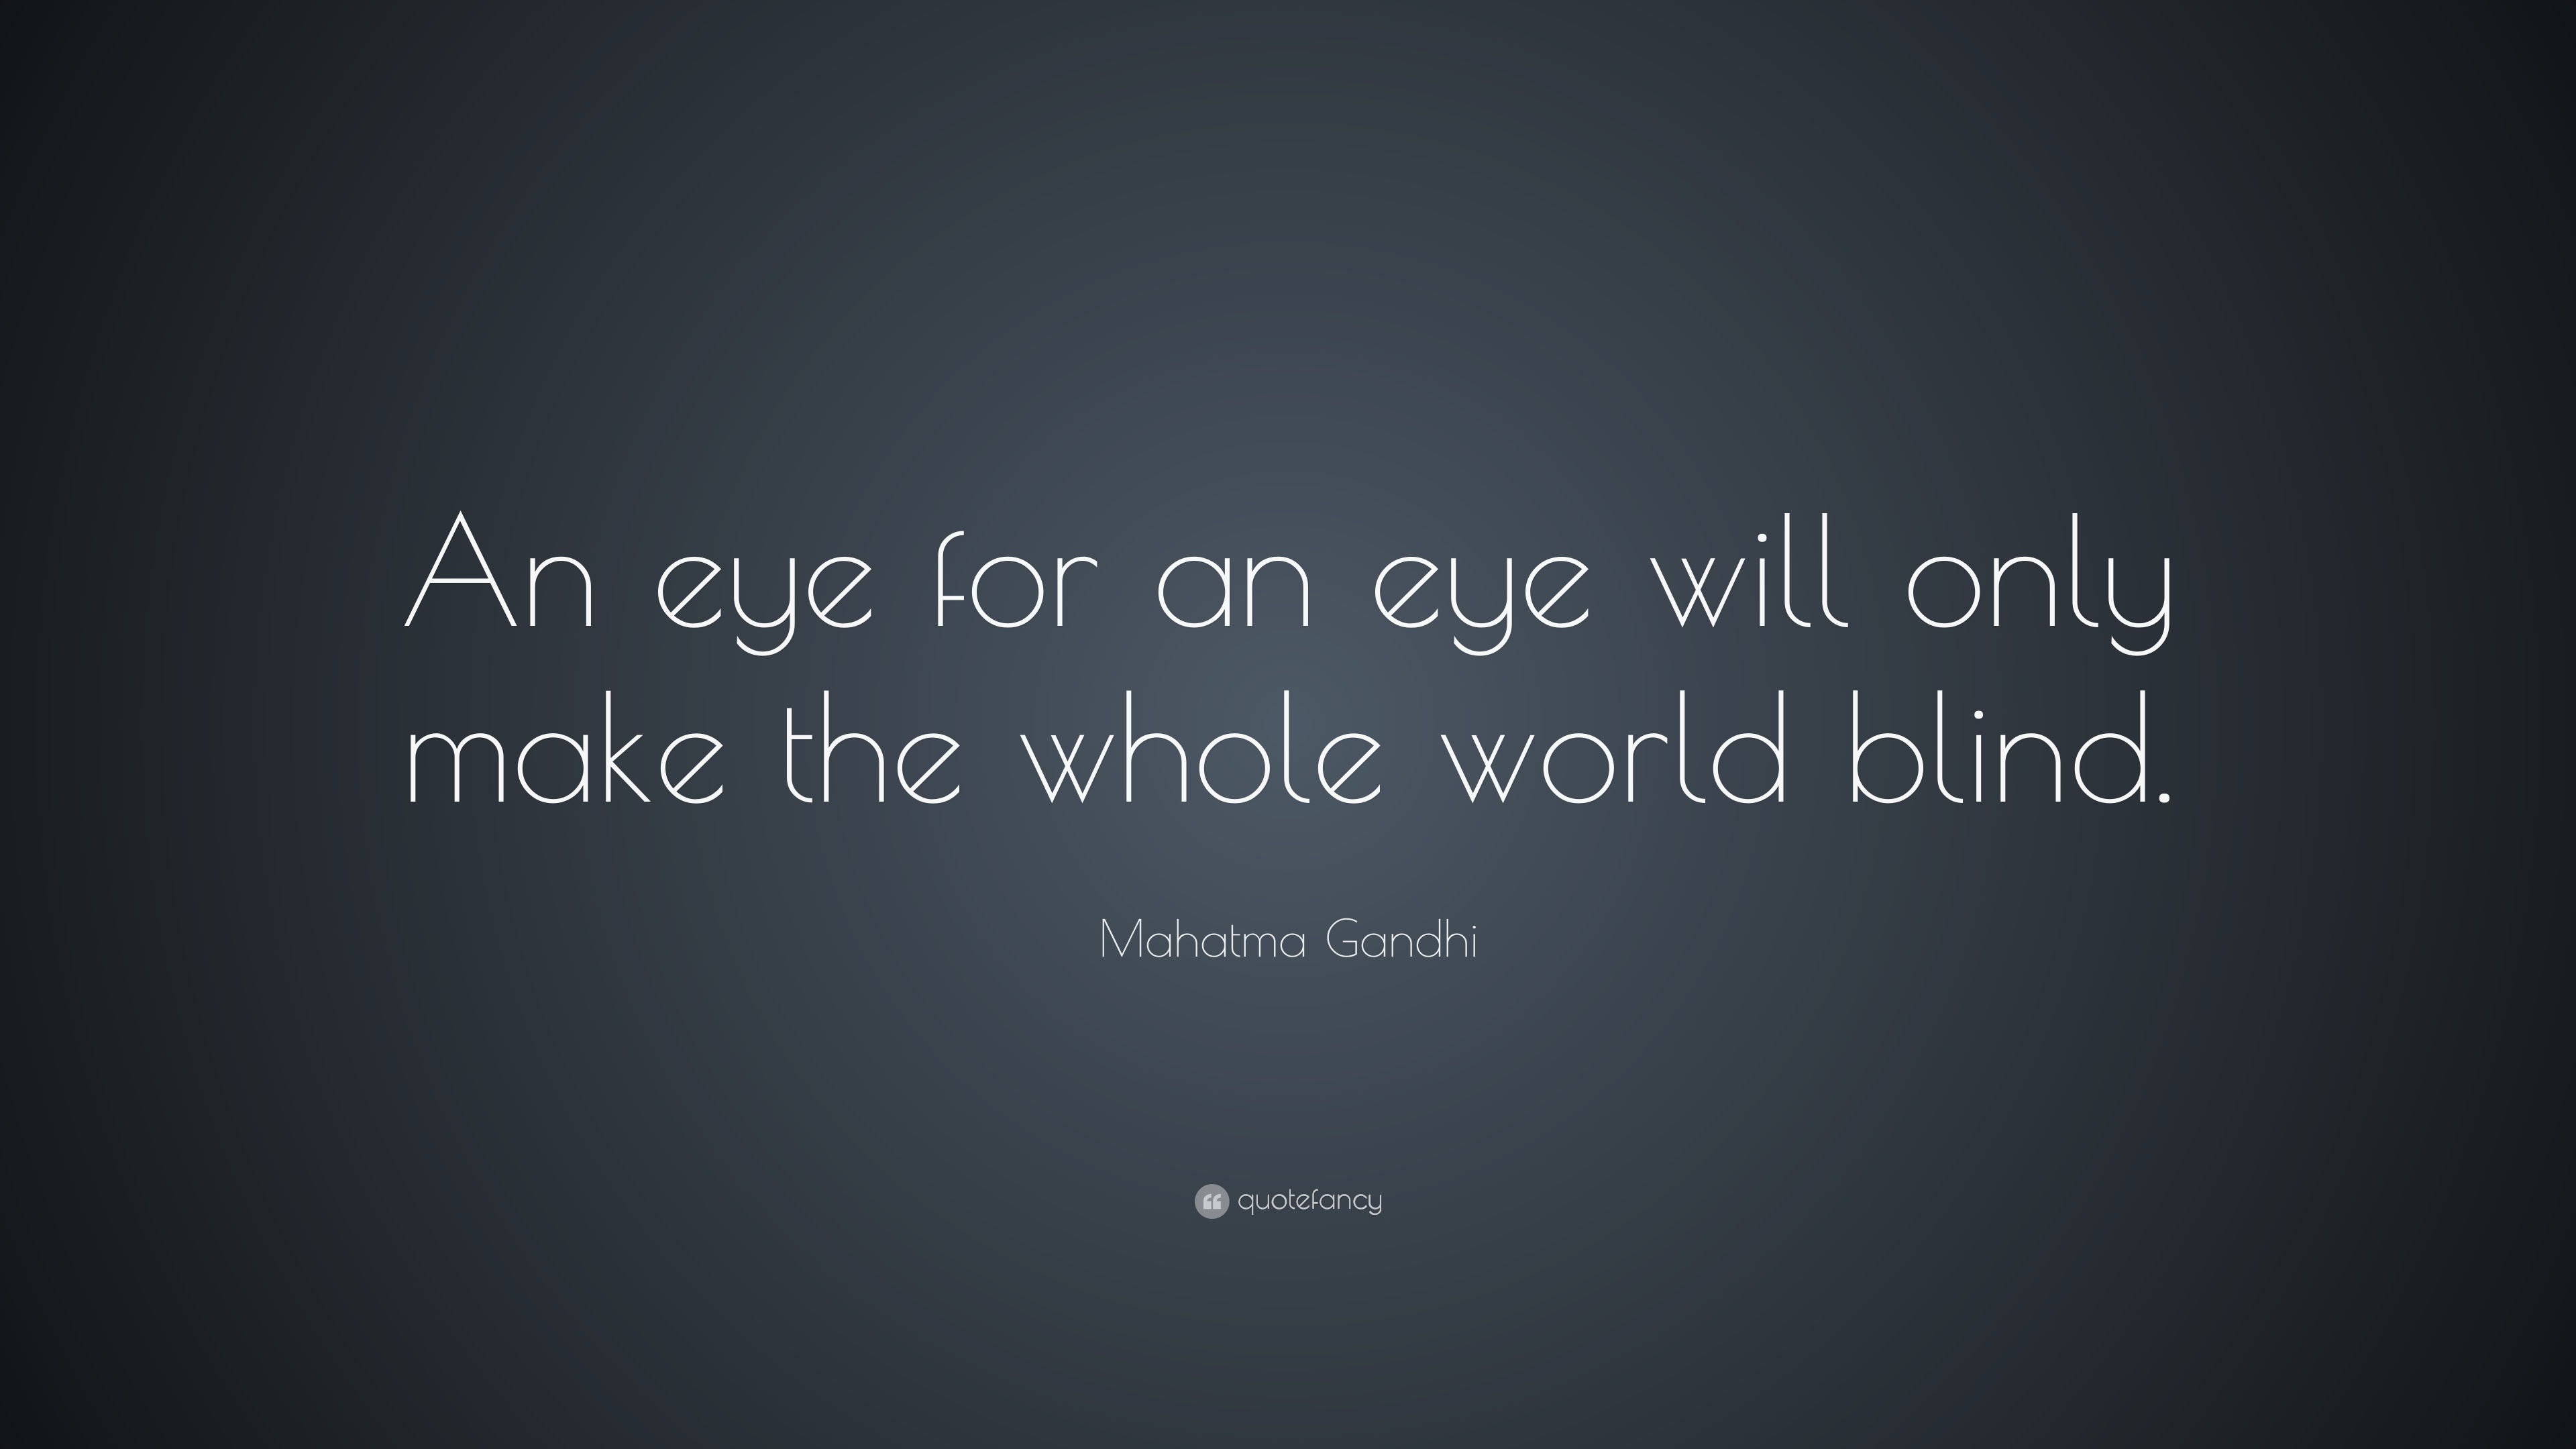 Gandhi Wallpapers With Quotes Mahatma Gandhi Quote An Eye For An Eye Will Only Make